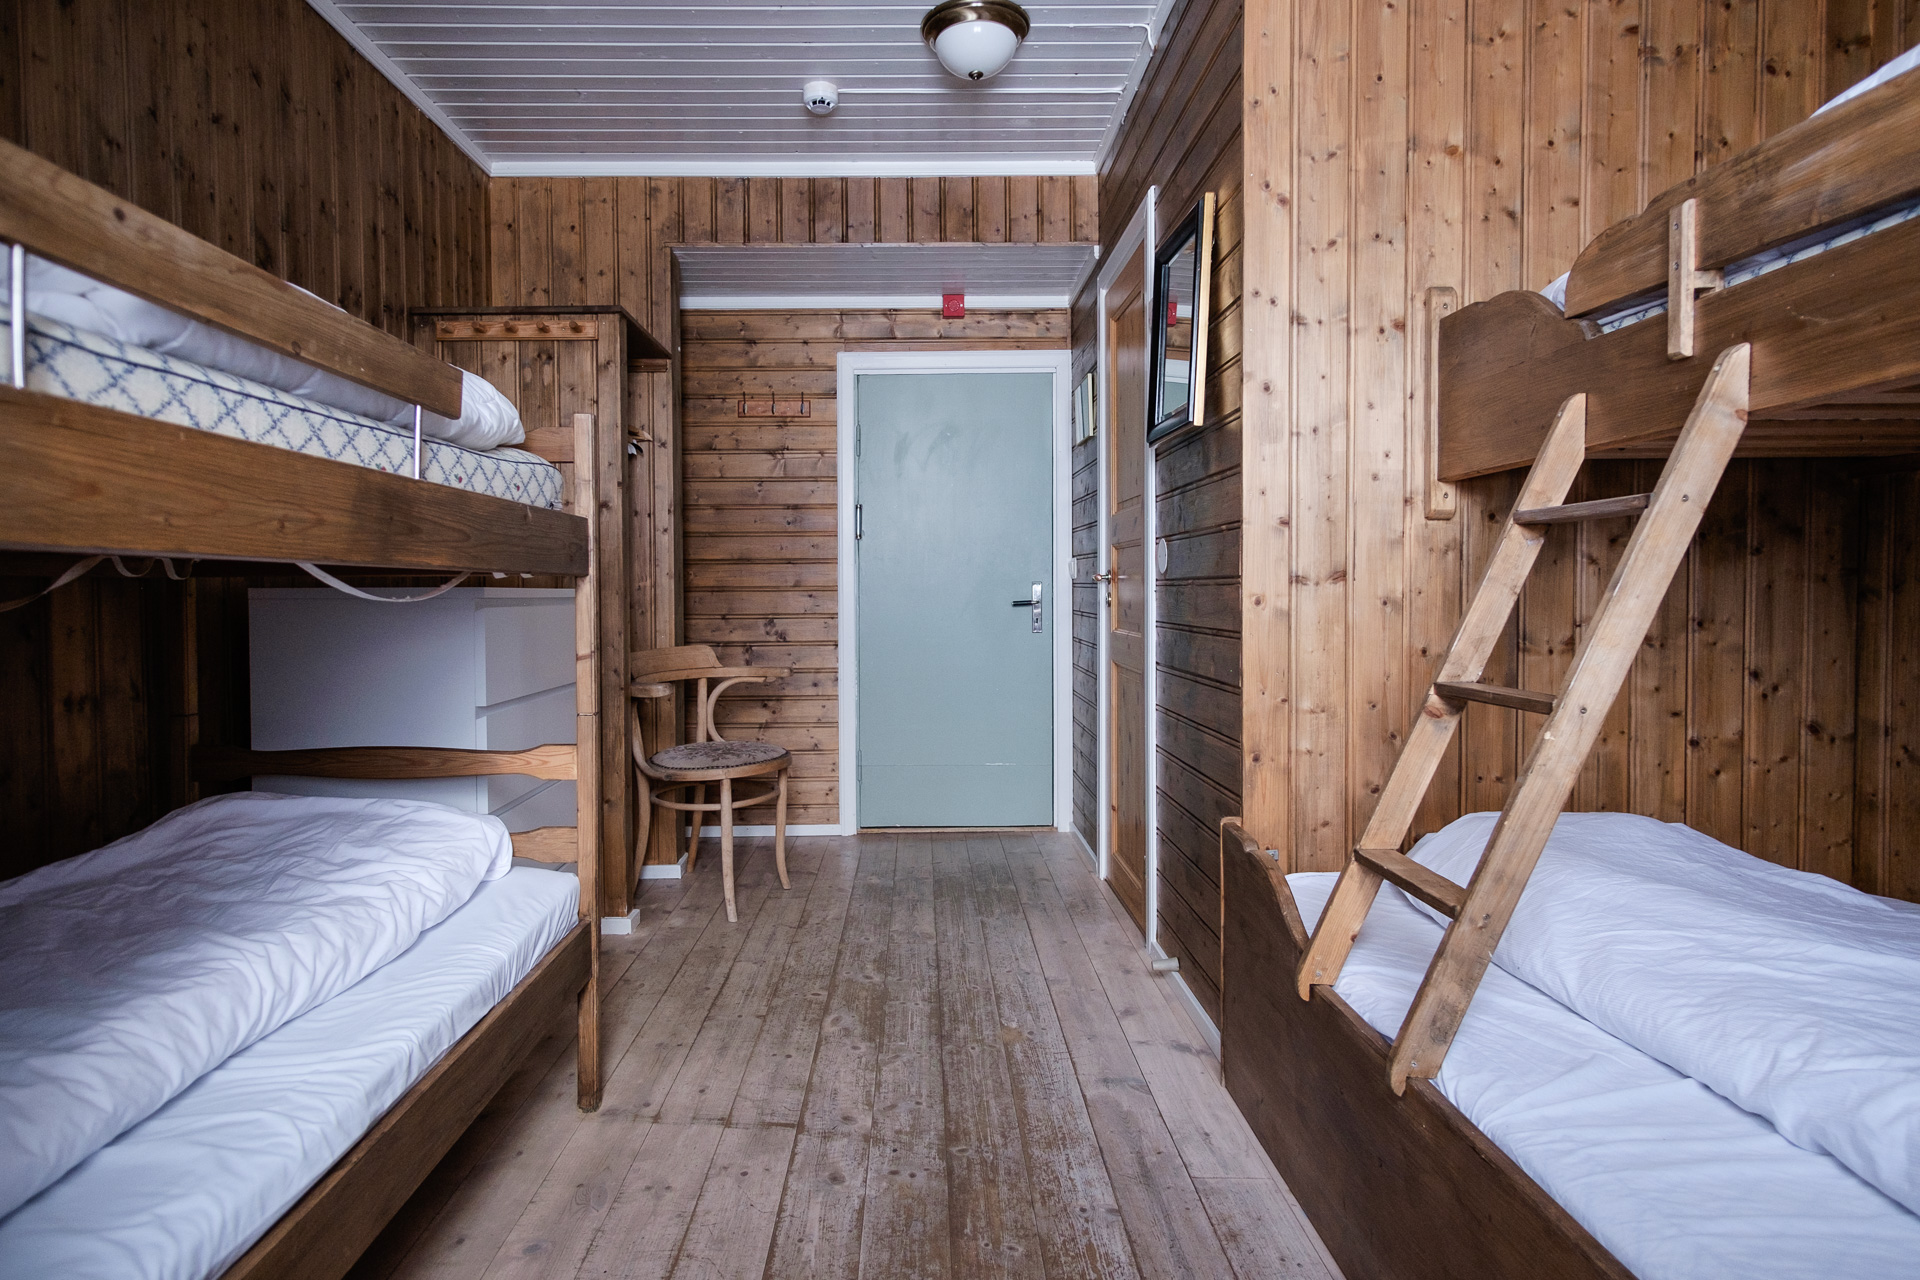 The hotel sleeps about 100 people. Rooms have two, four or six beds. This is a typical room. Photo: Sebastian Dahl